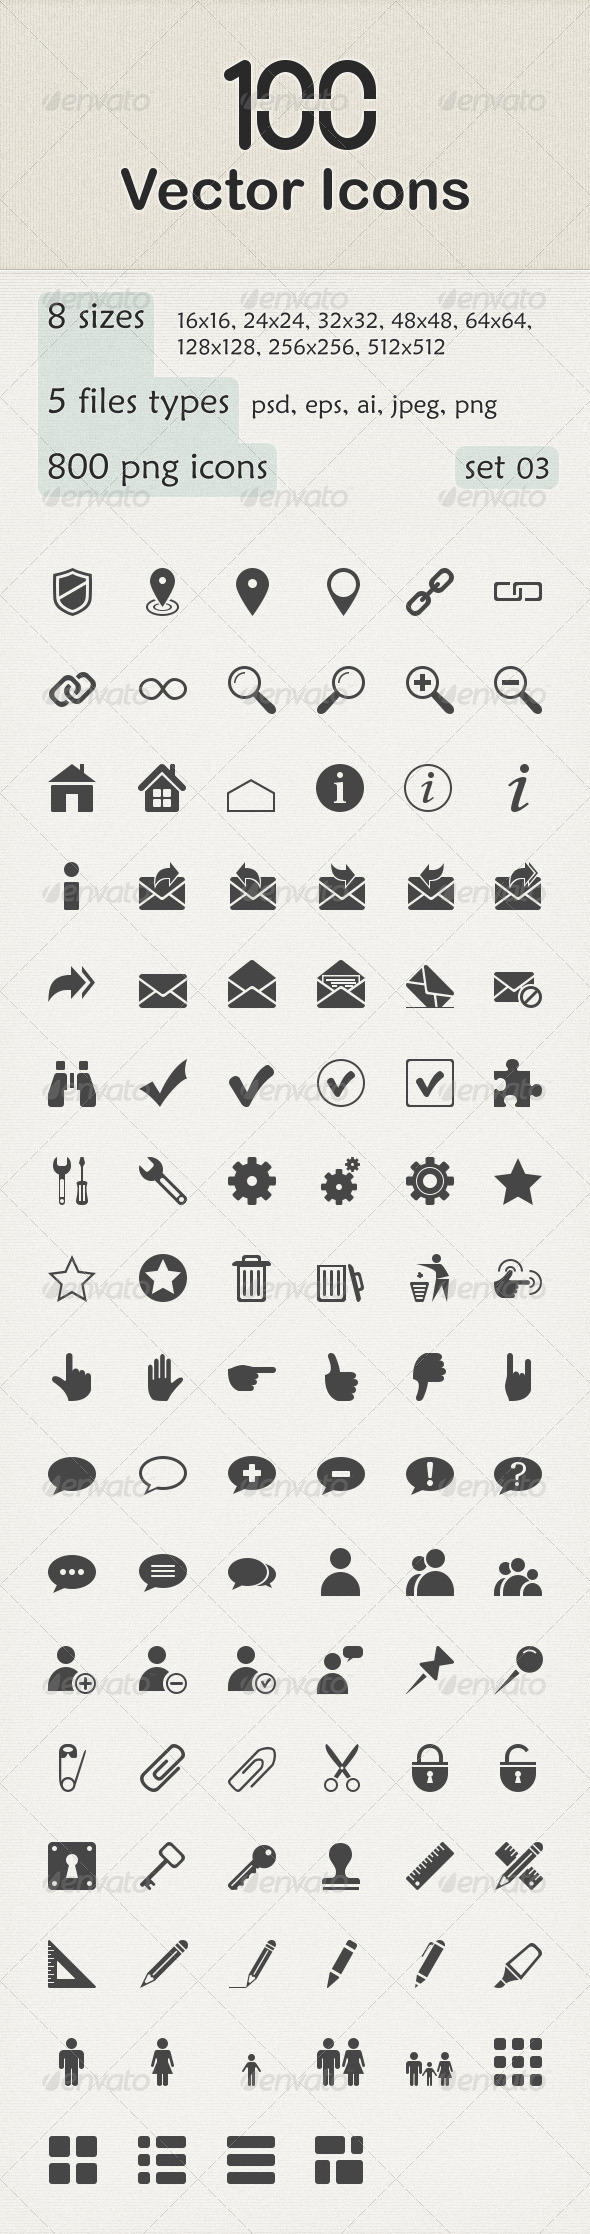 GraphicRiver 100 Vector Icons 6149440